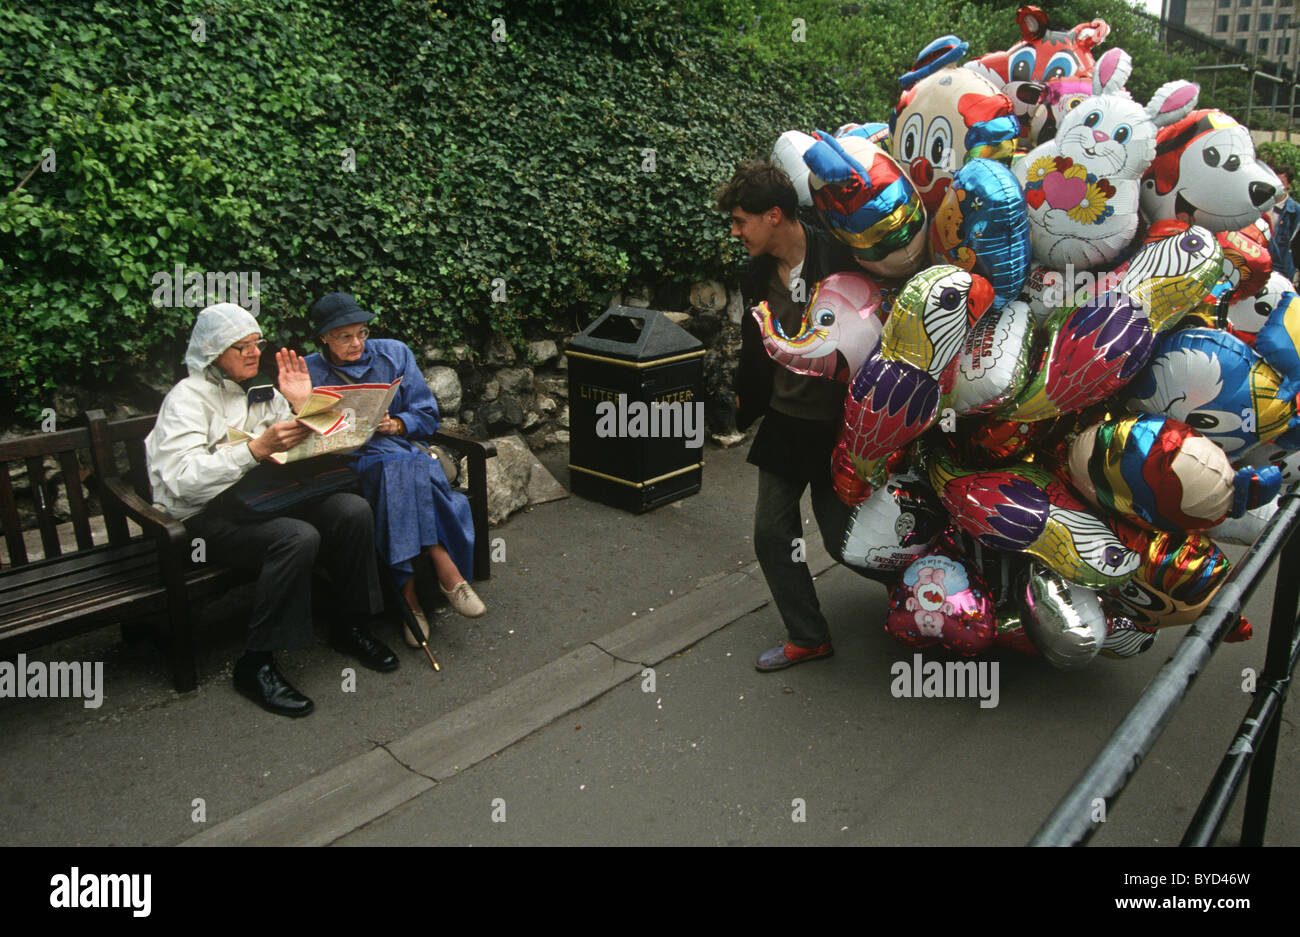 Two tourists reading a street map refuse the chance to buy a helium two tourists reading a street map refuse the chance to buy a helium balloon from a street vendor near the tower of london gumiabroncs Choice Image